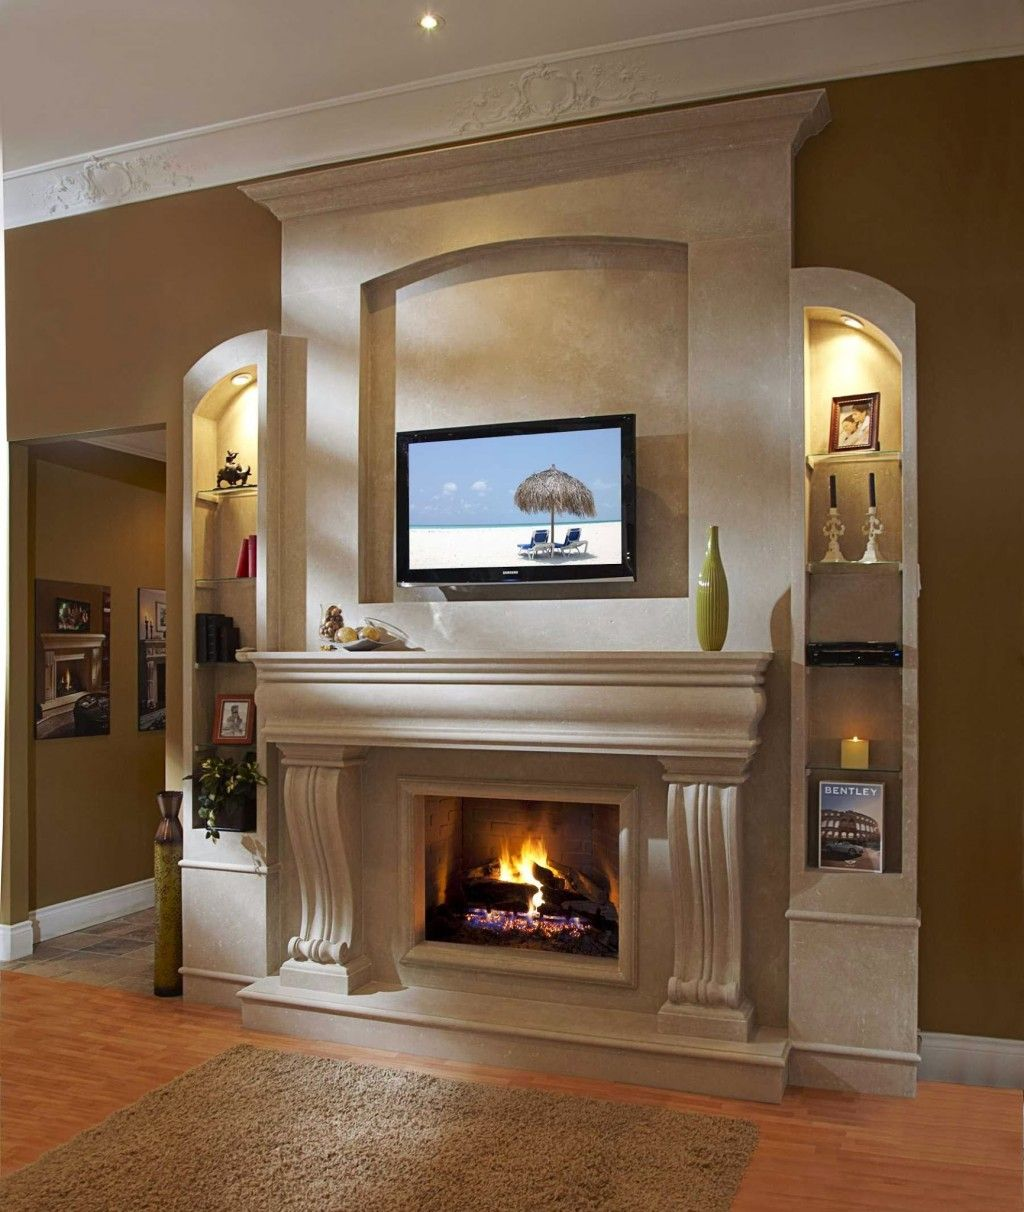 Striking Fireplace Design Ideas to Take Your Home to the Next ...